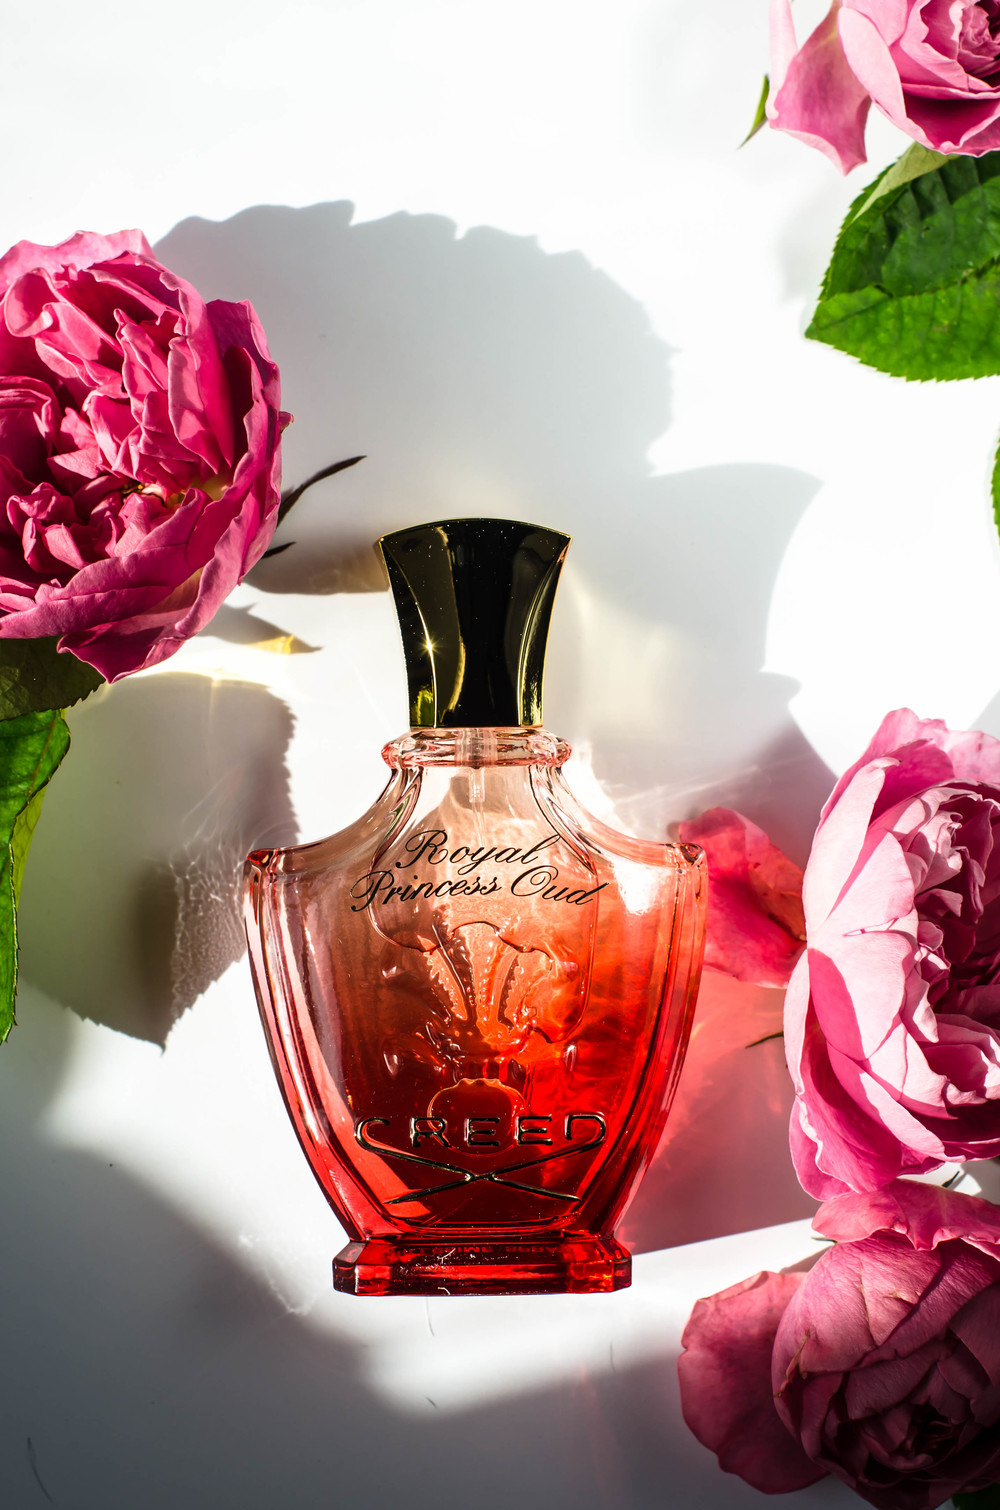 ROSE & IVY JOurnl Flowers in a Bottle CREED ROYAL PRINCESS OUD